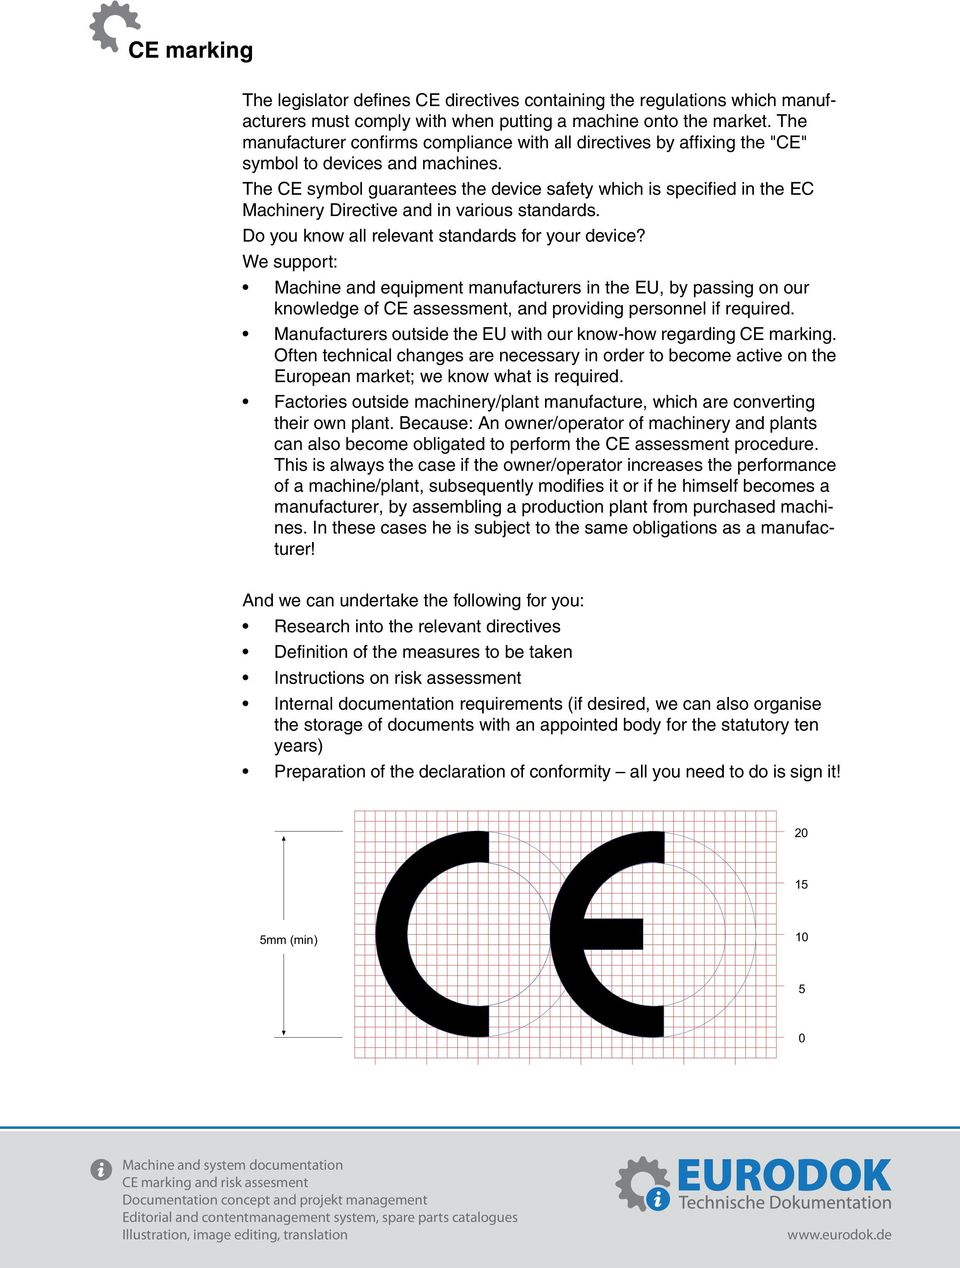 The CE symbol guarantees the device safety which is specified in the EC Machinery Directive and in various standards. Do you know all relevant standards for your device?